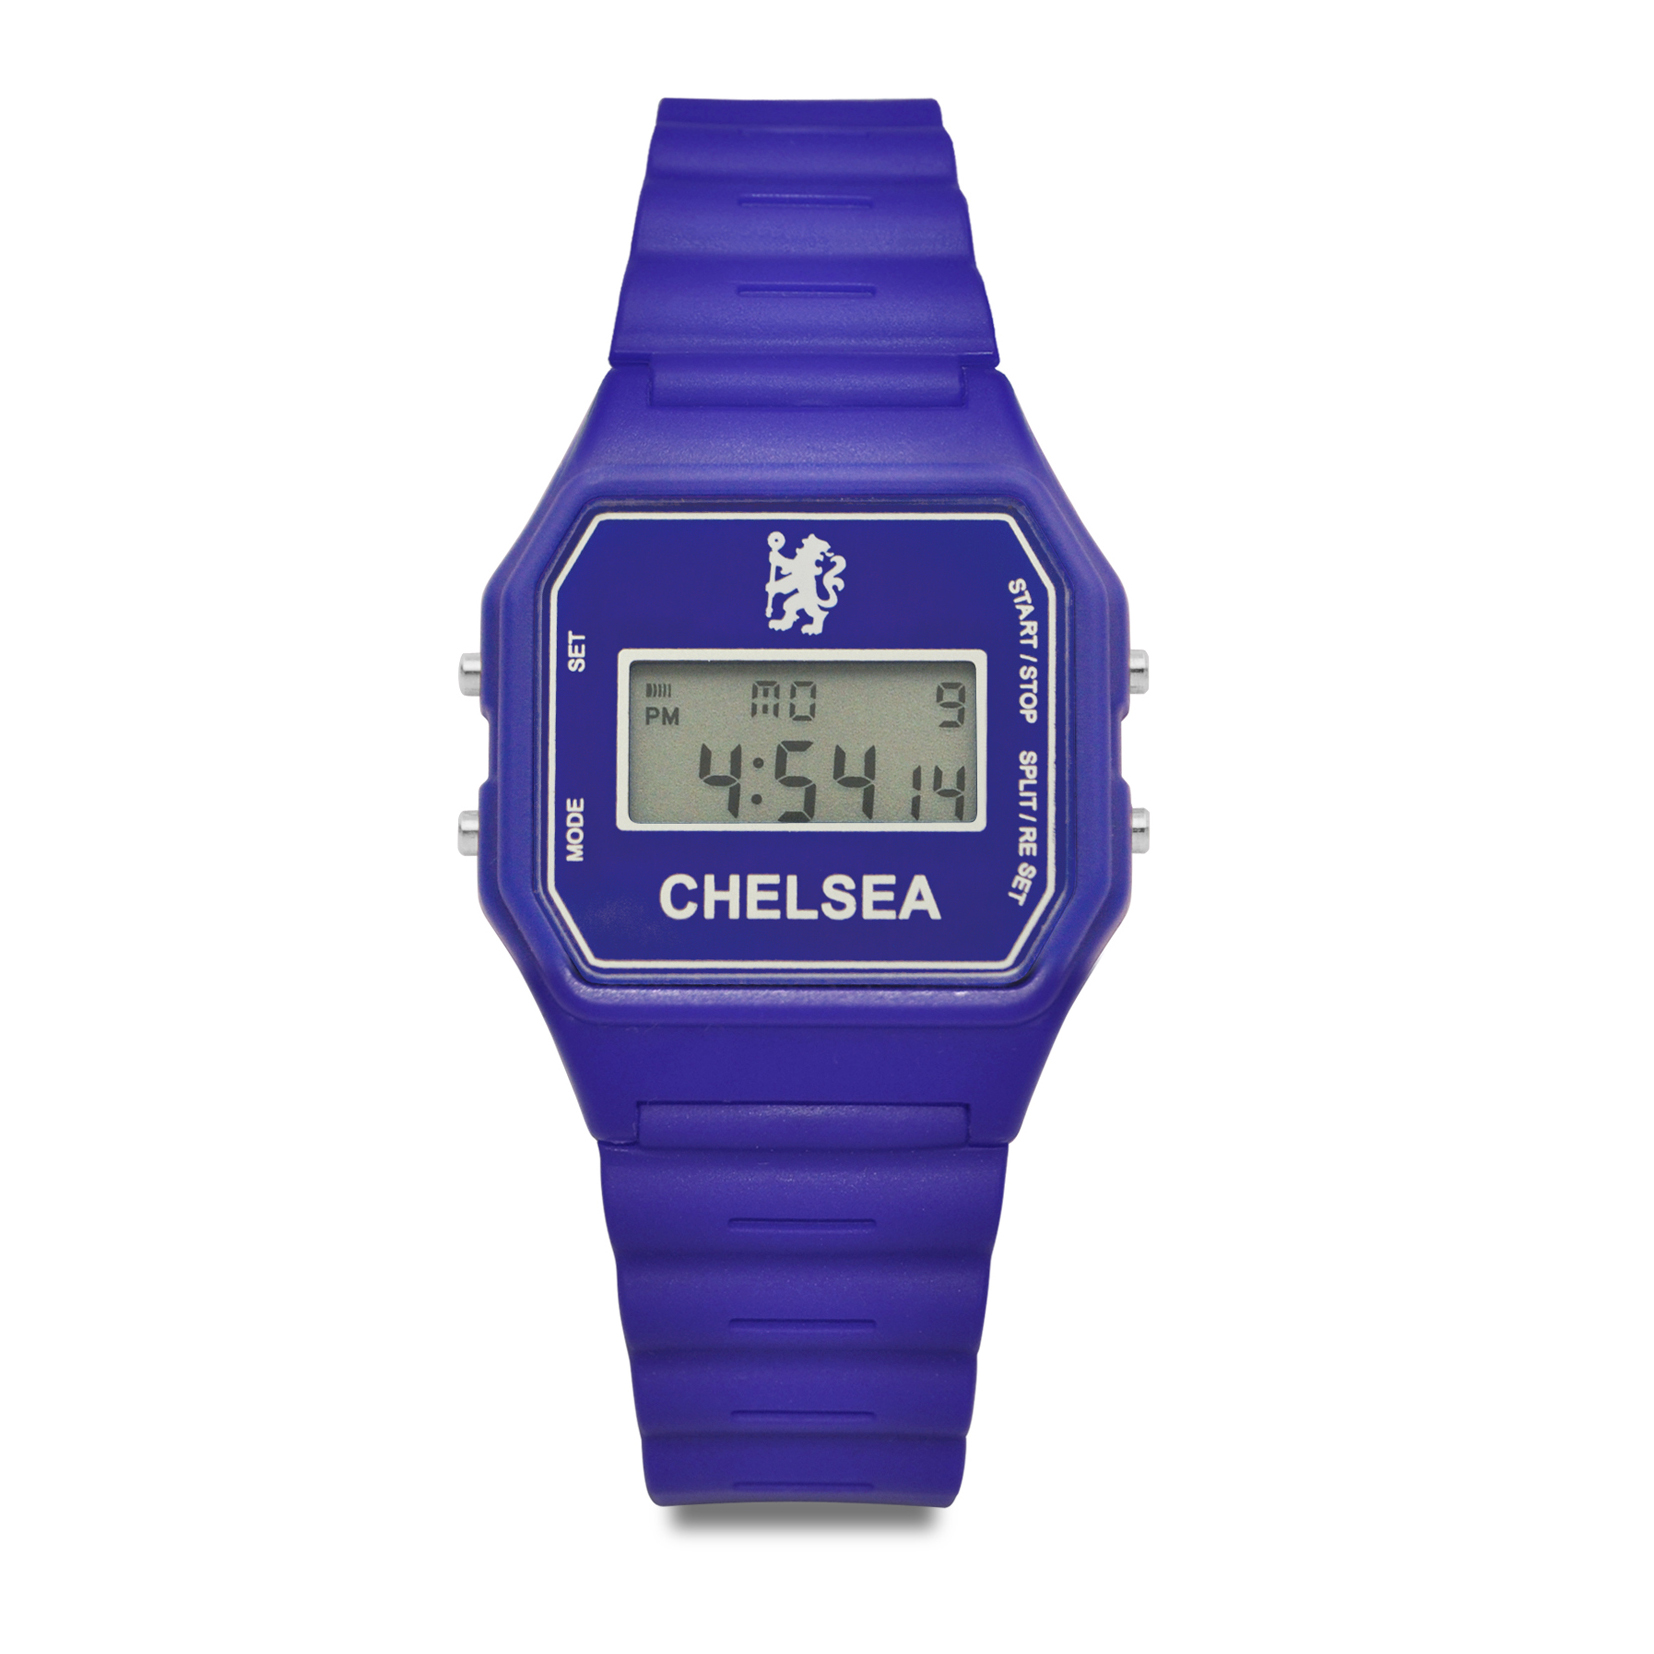 Chelsea Retro Digital Watch - Kids